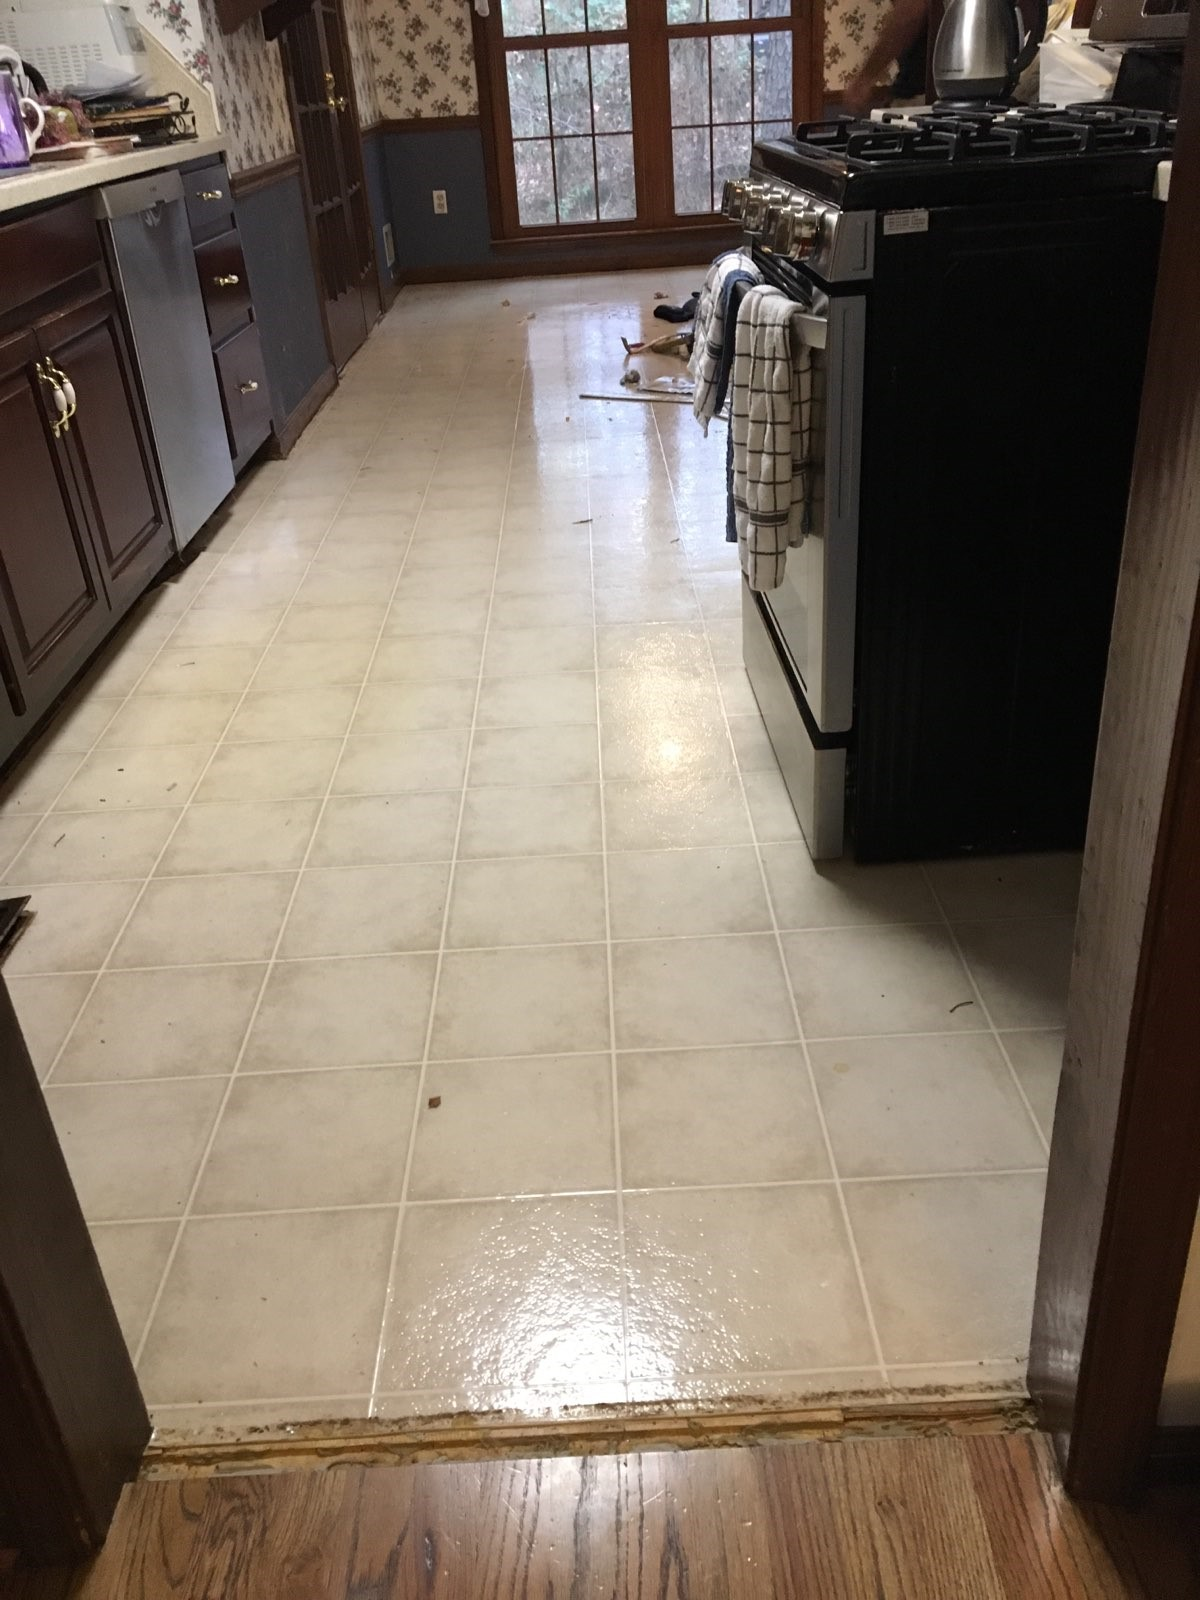 Original kitchen vinyl flooring